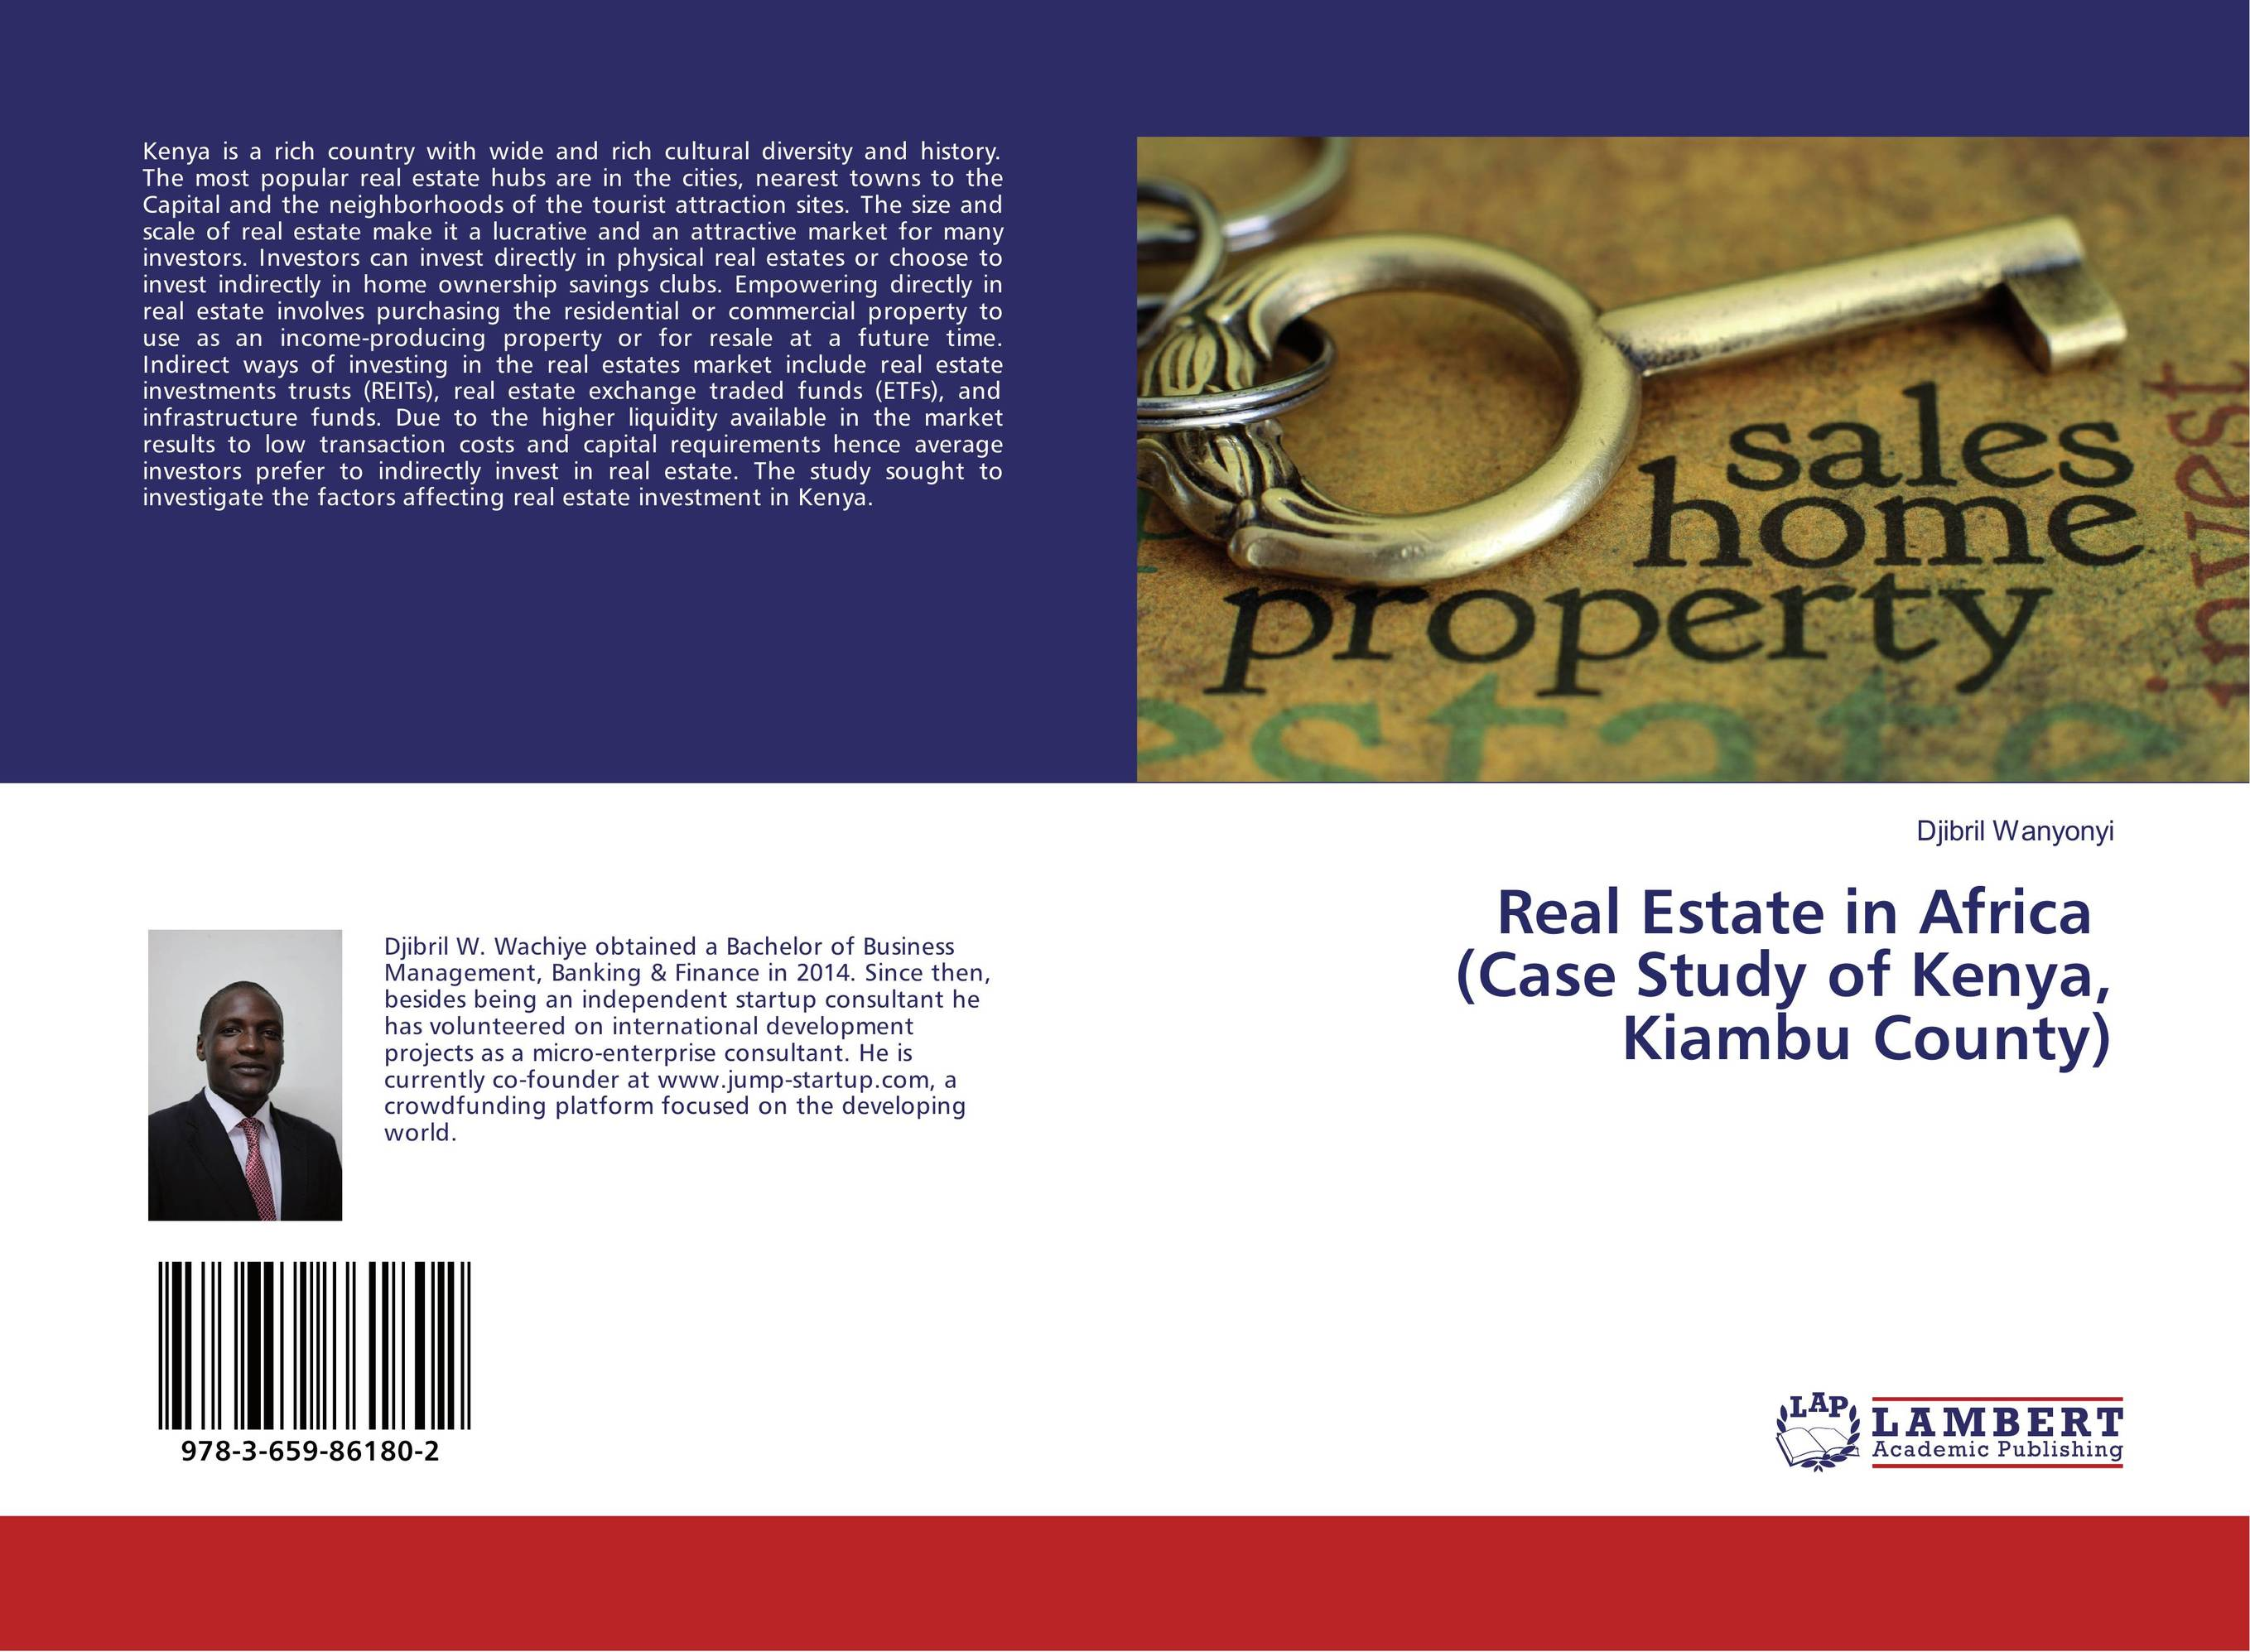 Real Estate in Africa (Case Study of Kenya, Kiambu County) wendy patton making hard cash in a soft real estate market find the next high growth emerging markets buy new construction at big discounts uncover hidden properties raise private funds when bank lending is tight